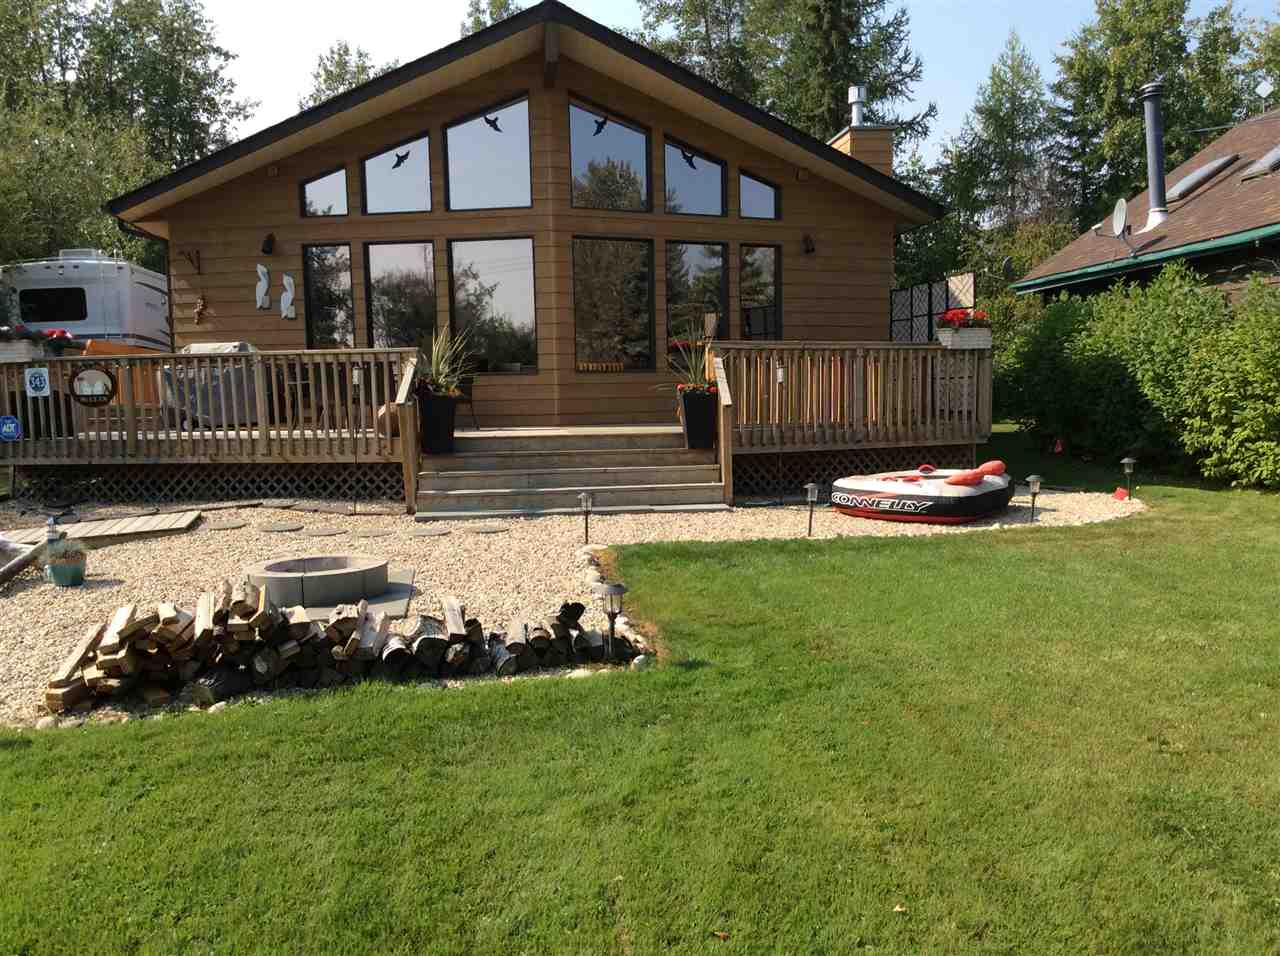 Dreaming of Lake Access and Unobstructed Lake Views without Waterfront Cost? Here You Go!! 343 Crystal Springs tucked into a cul-de-sac offers that and more! Refreshing, Calming Tones, New Baseboard, Casings & some Lighting. Impeccably maintained 3 bdrm, 2 bath, bungalow showcases Vaulted Cedar Lined Ceiling, Glazed Rake Head Windows, Abundant Lake Facing Windows with Pigeon Lake views from the Open Concept Kitchen/Gathering room, Gas Fireplace, Ideally located Laundry Area and Skylights providing Natural Lighting, Massive Wrap Around Deck, Storage shed, Guest House and last but not LEAST...22x32 Garage! New Fence, well pump, Reverse Osmosis, Rear deck ALL Ready and Waiting for your Family!!!! BEST OF  BOTH WORLDS with Lake Access, Park across from your Front Fire Pit or back Private Deck! Work is Done!!! Congratulations You have now Discovered a Property that offers it ALL! Bring the Family, the Watercraft and starting building your memories THIS summer! Wastewater update information in Private Remarks.